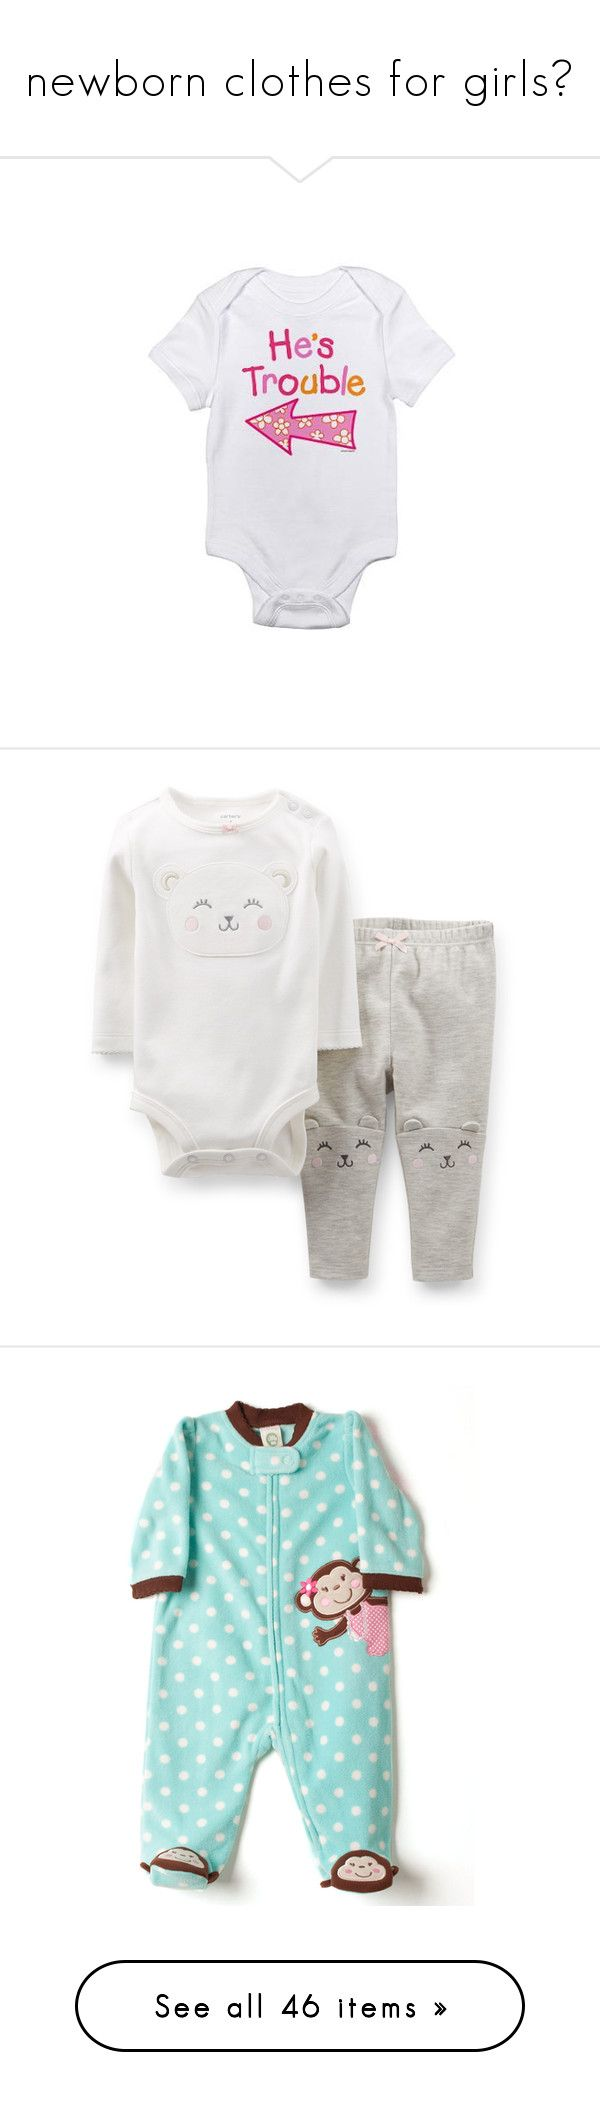 """""""newborn clothes for girls🐻"""" by b-abygirlll ❤ liked on Polyvore featuring baby, baby clothes, baby stuff, baby girl, kids, baby girl clothes, hazel, accessories, hair accessories and headbands & turbans"""